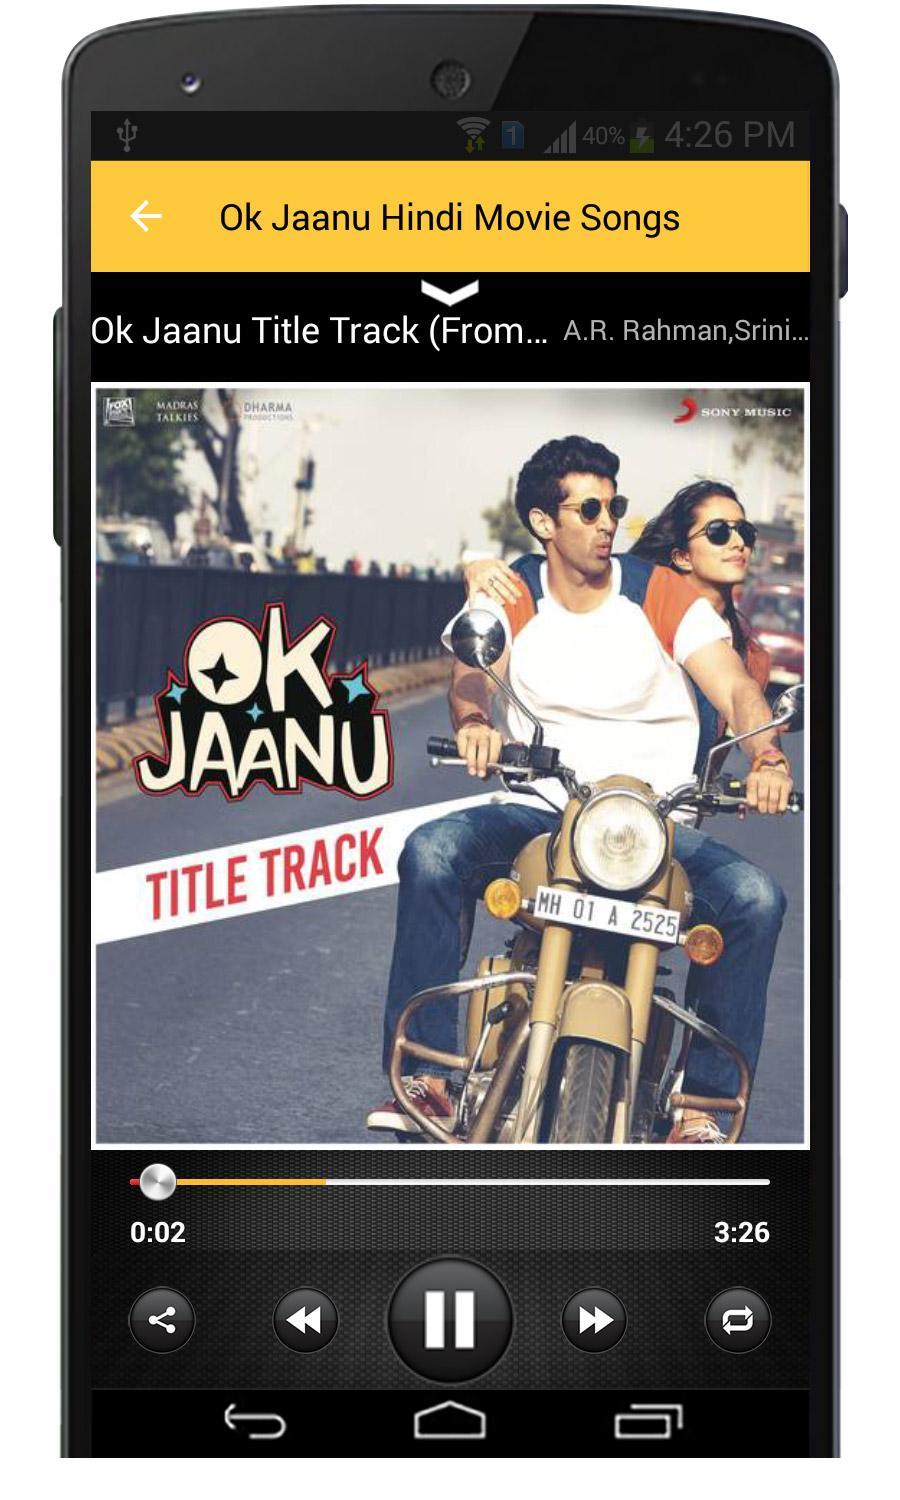 Ok Jaanu Hindi Movie Songs for Android - APK Download